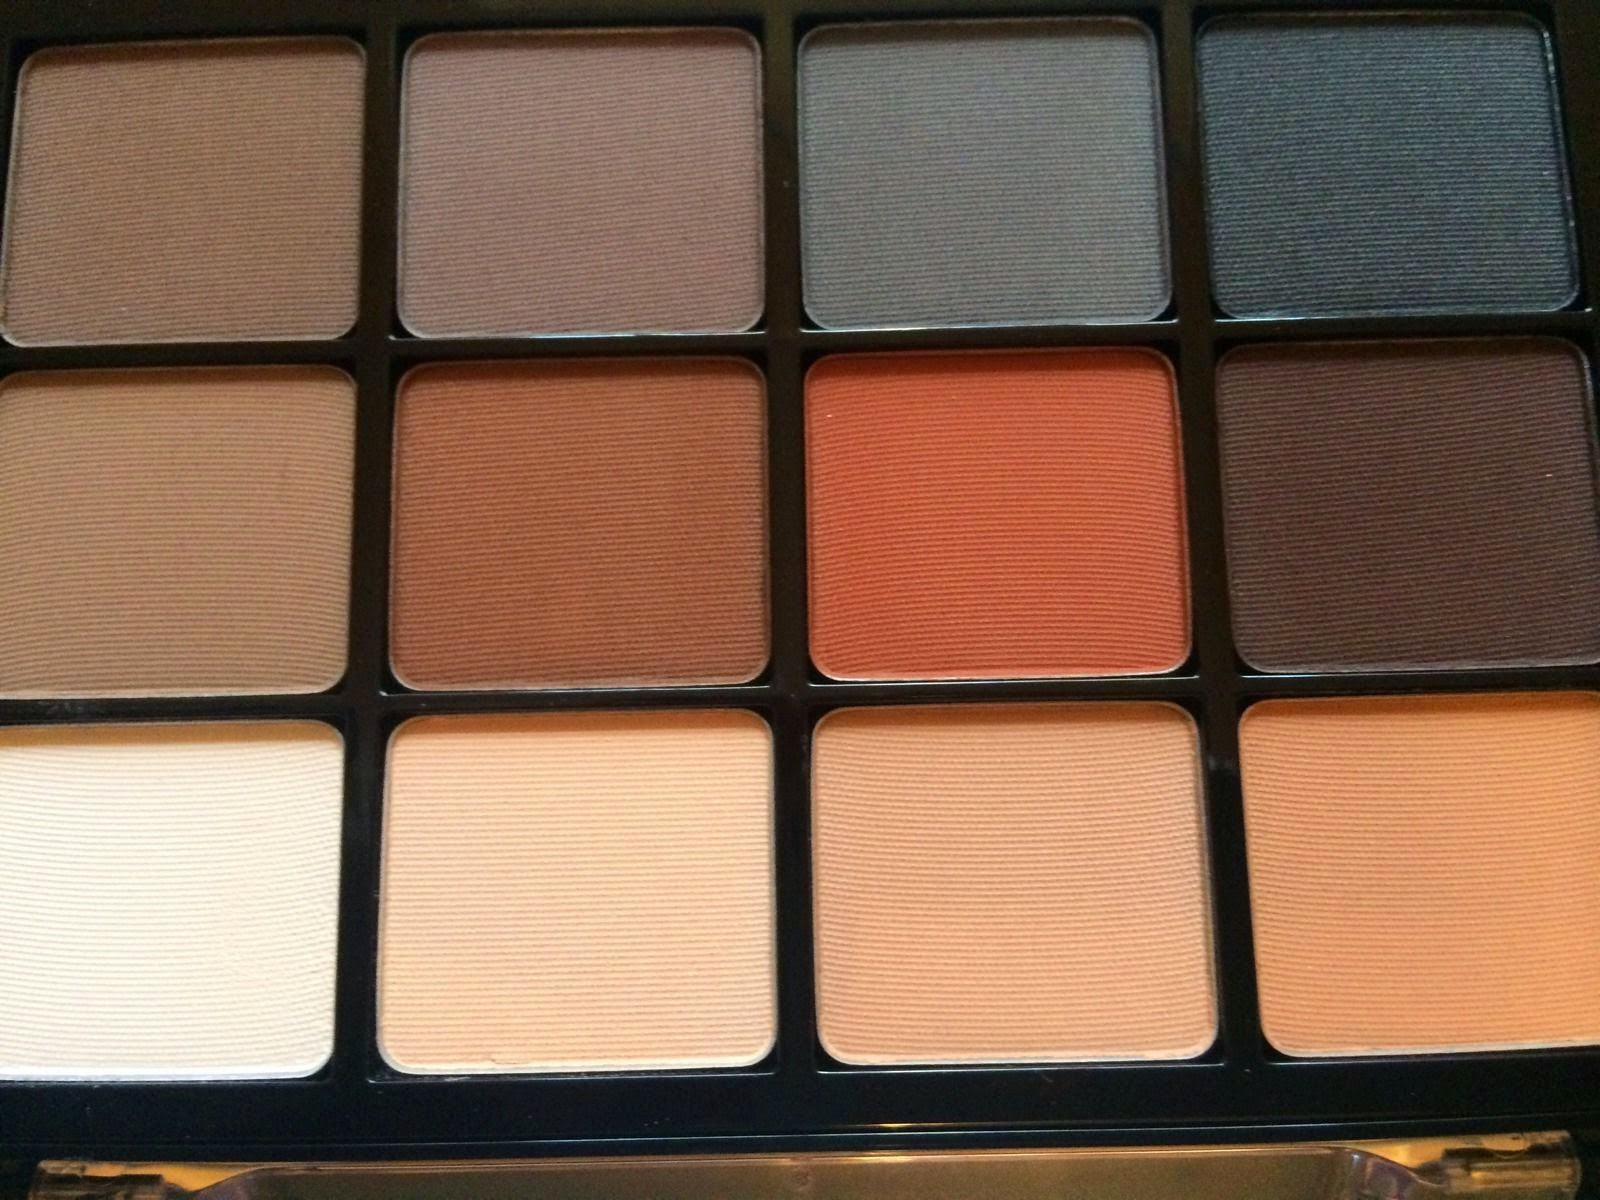 Viseart Palette My Lovely Fashionista 06 Paris Nudes 01 Neutral Matte